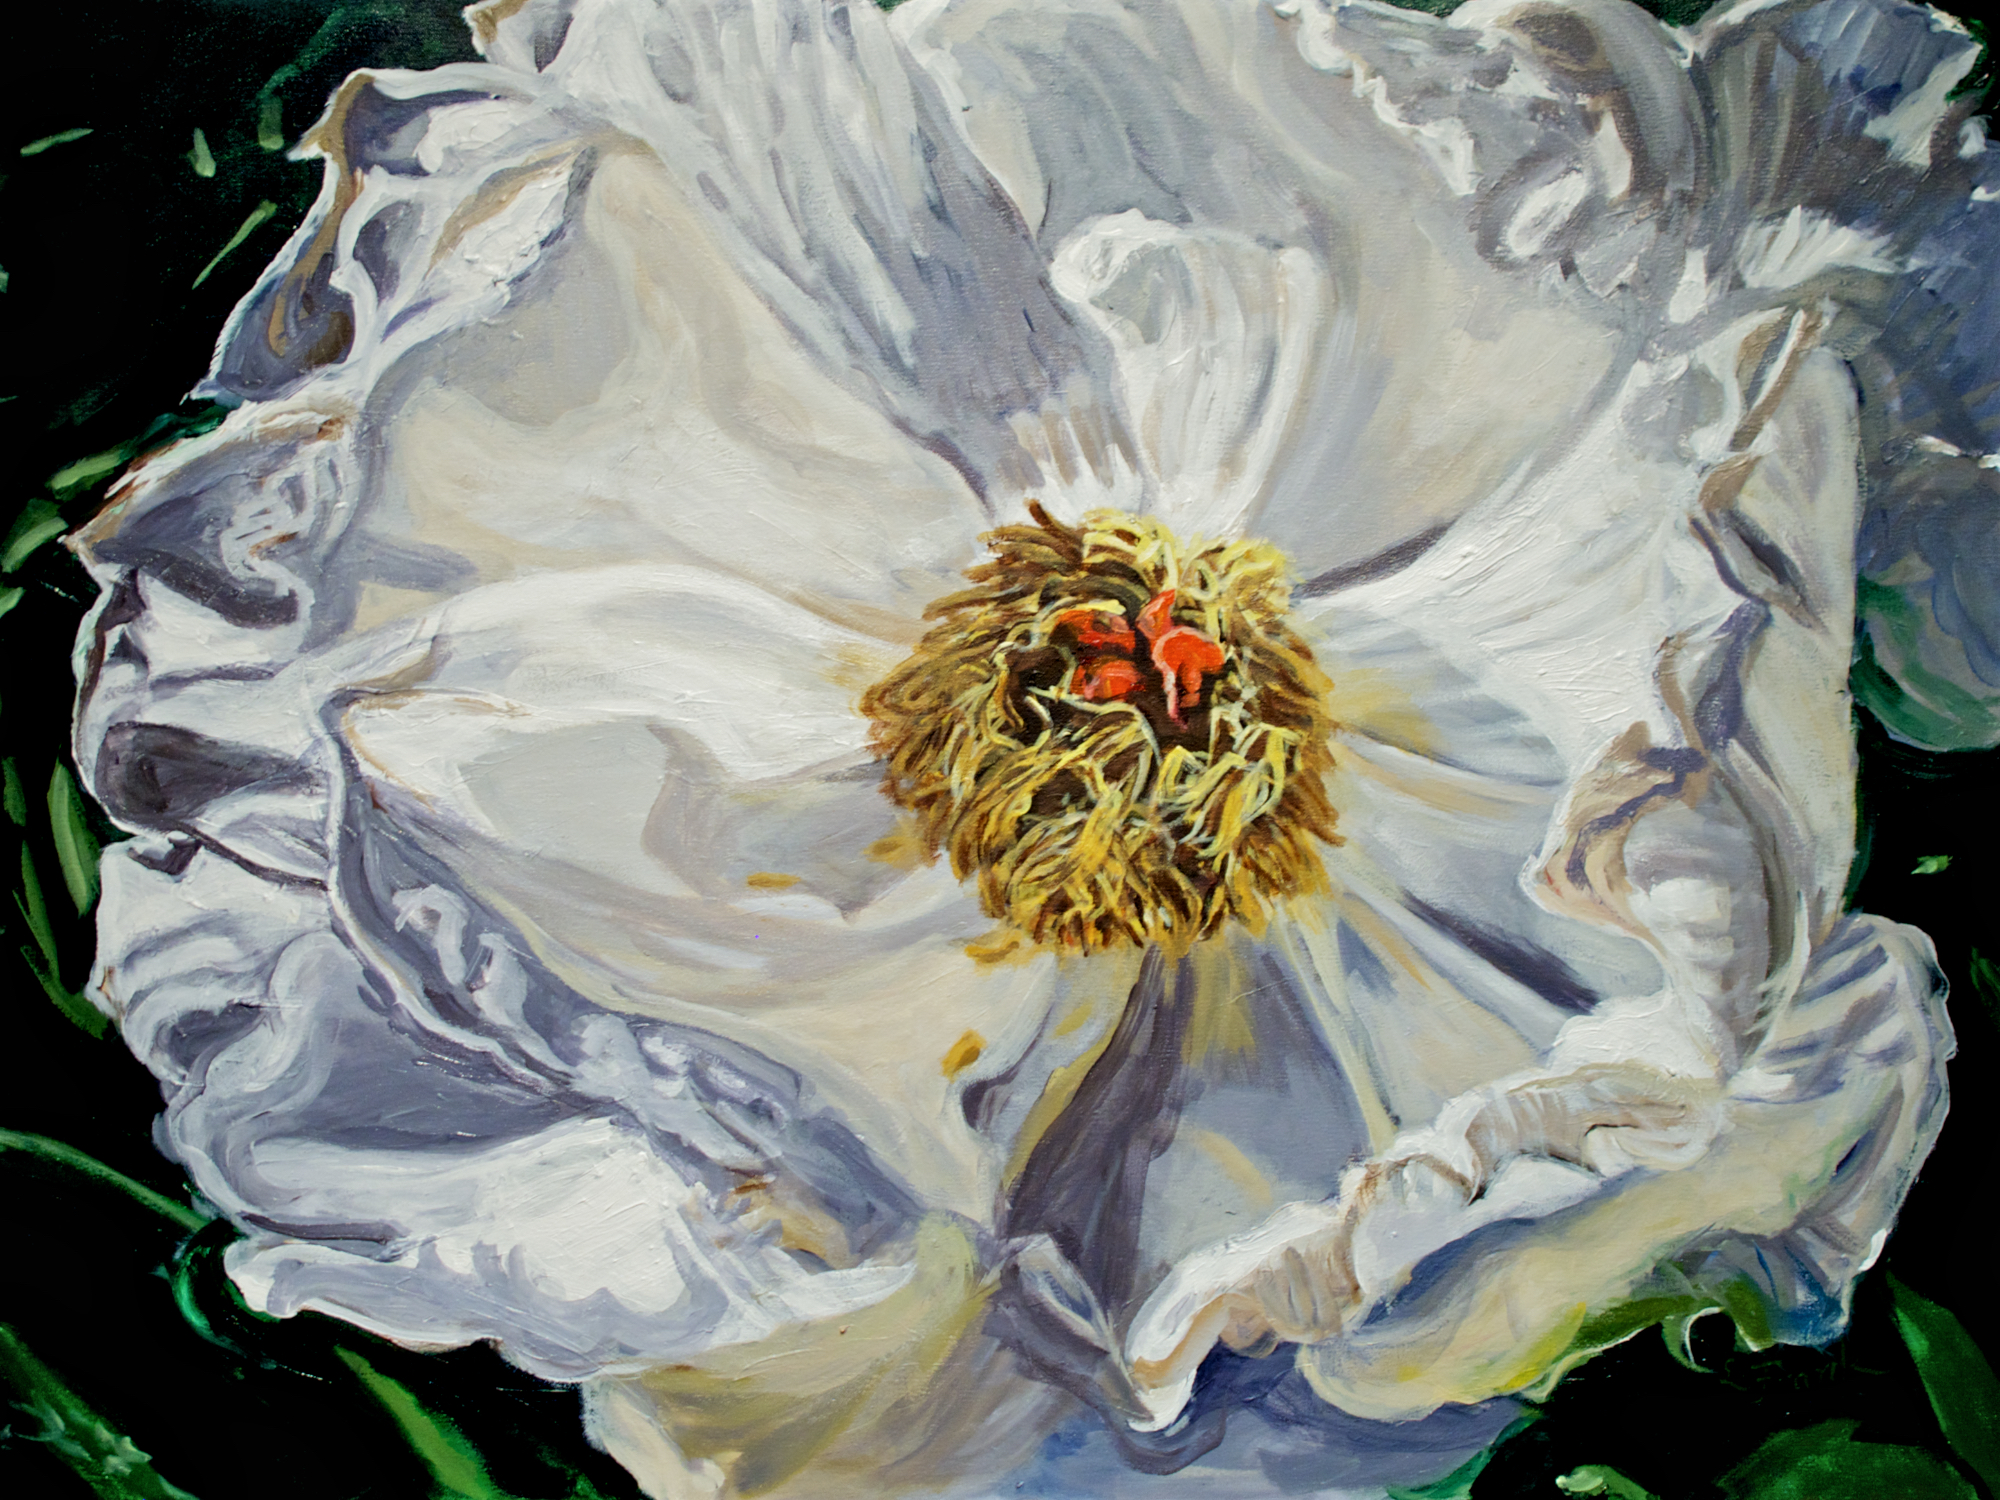 June 2015 - Leona's painting Peony 2, Weir Farm is chosen for Weir Farm's 25th Anniversary Exhibition of former selected Artists-in-Residence.